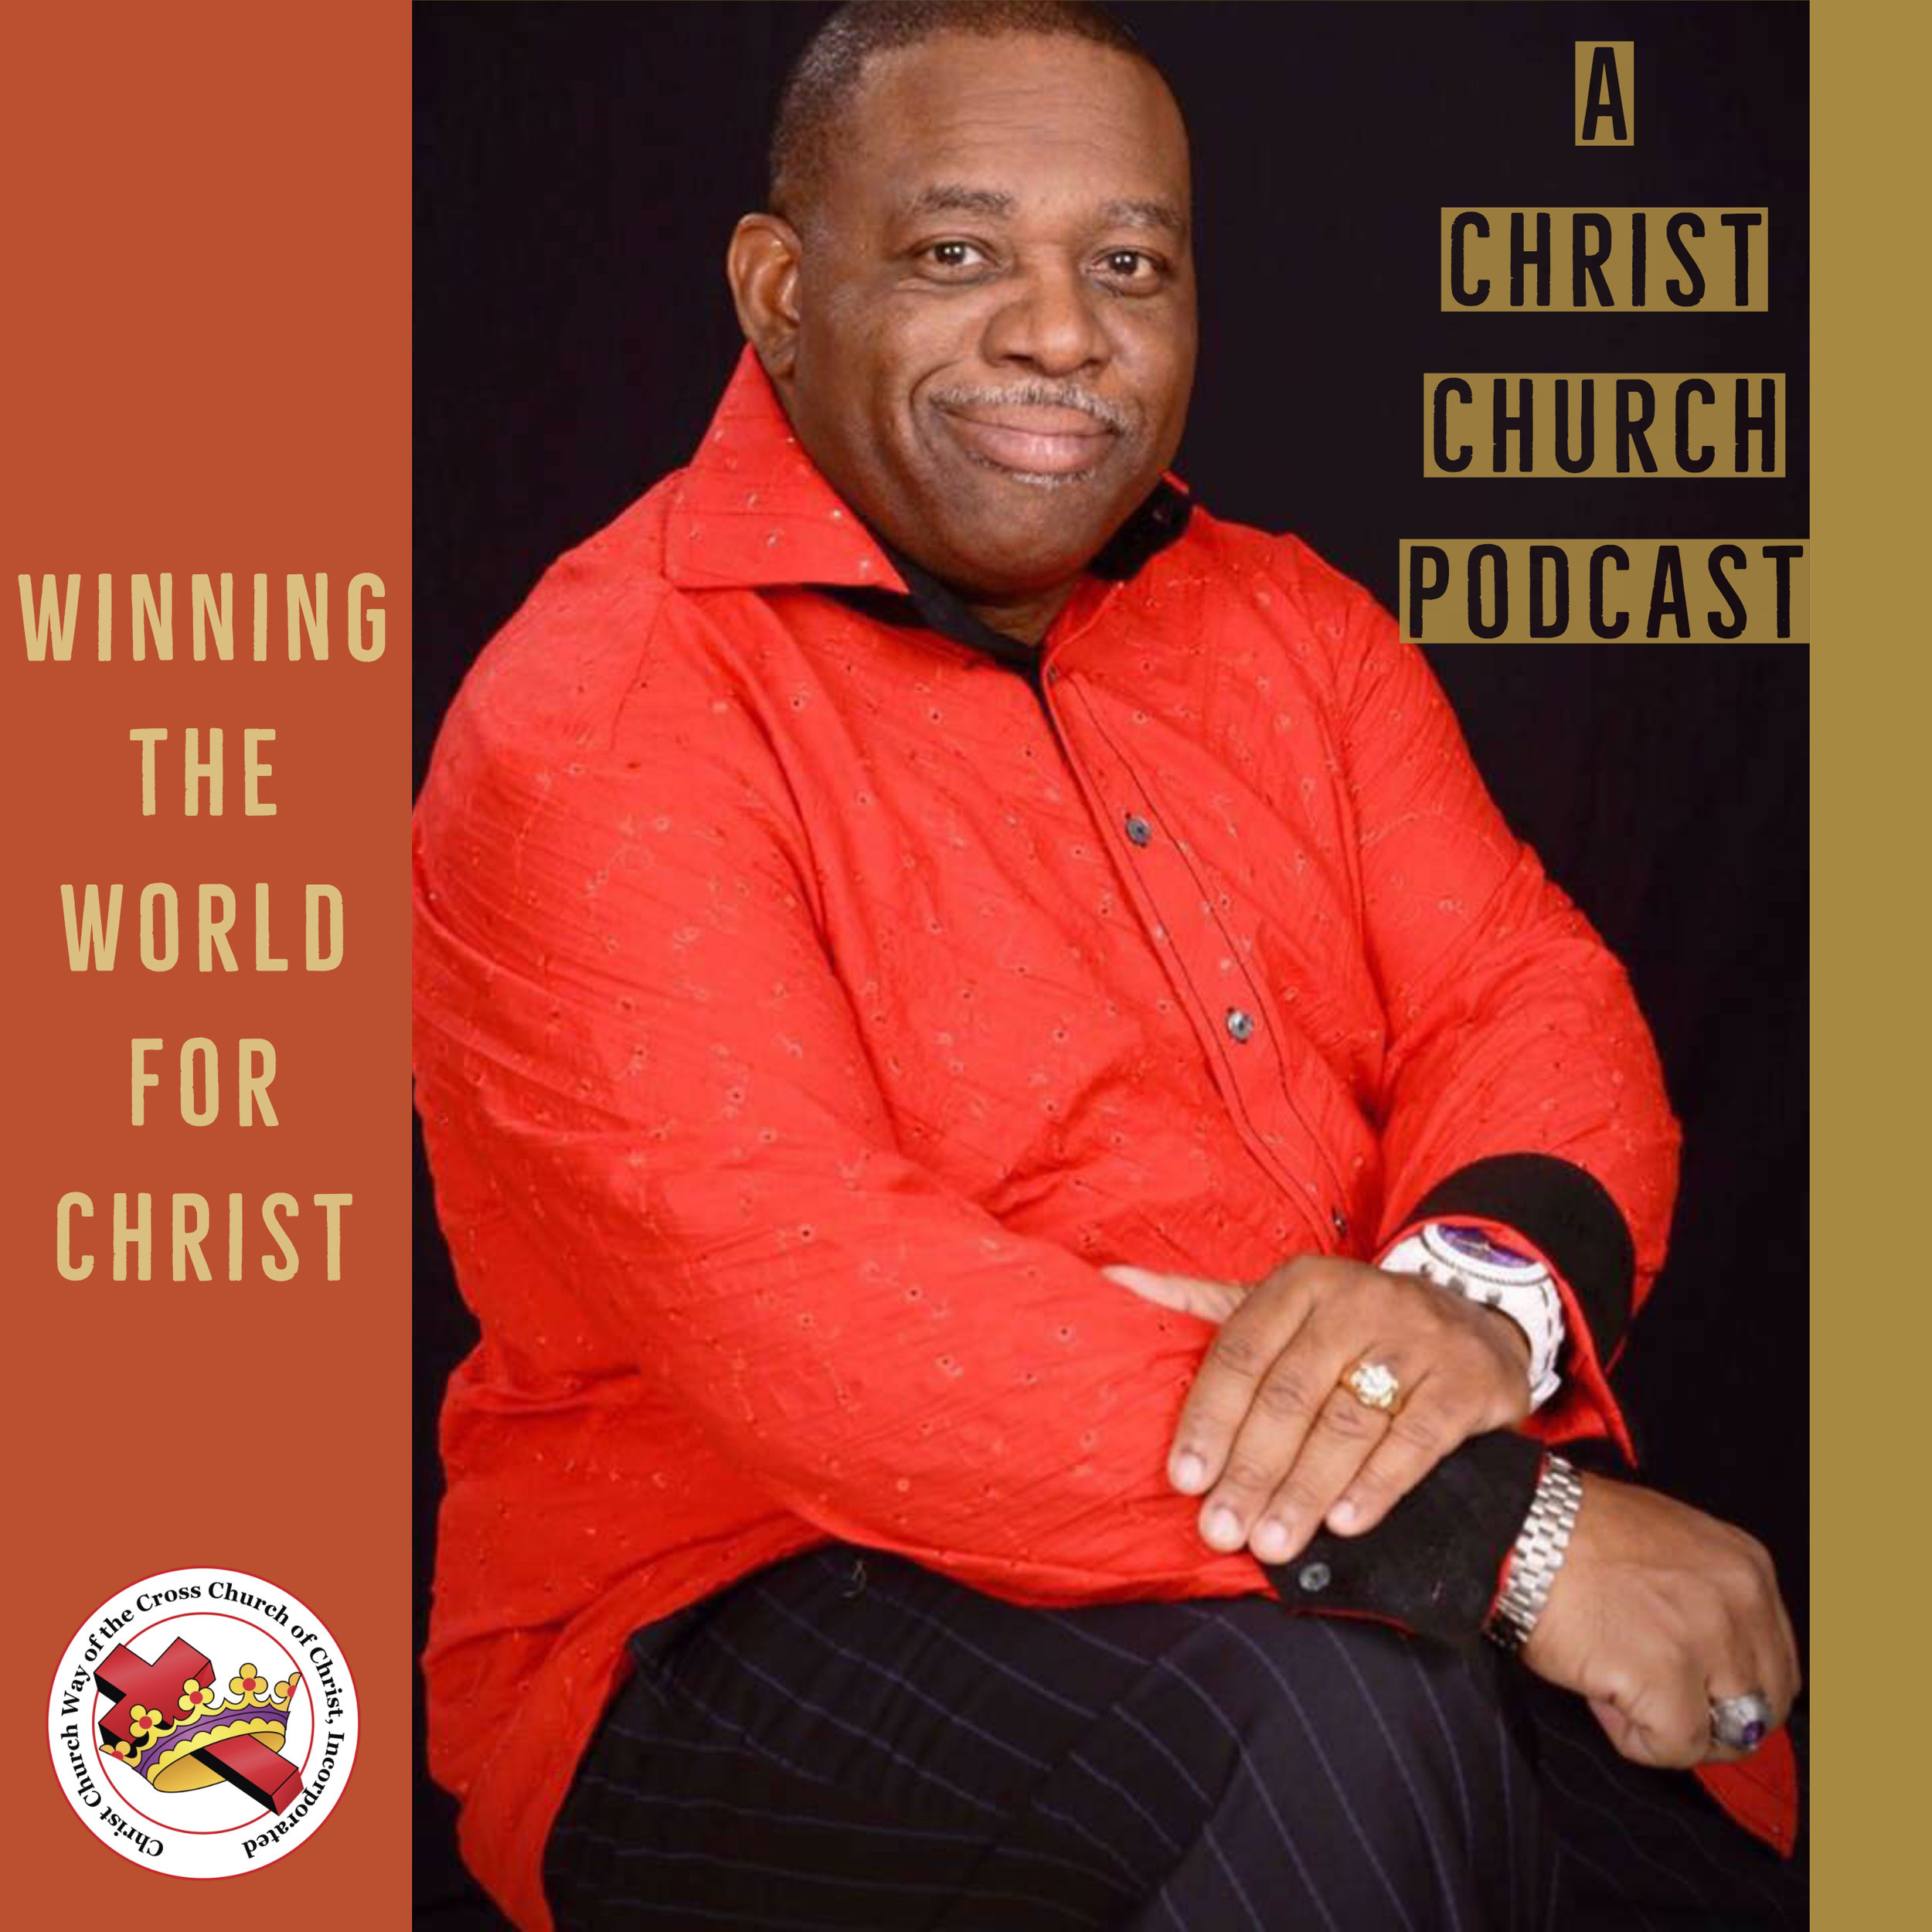 WINNING THE WORLD FOR CHRIST - Winning the World For Christ is a weekly podcast that I produce and edit for Christ Church, Way of The Cross. Click the picture to be taken to the podcast page.